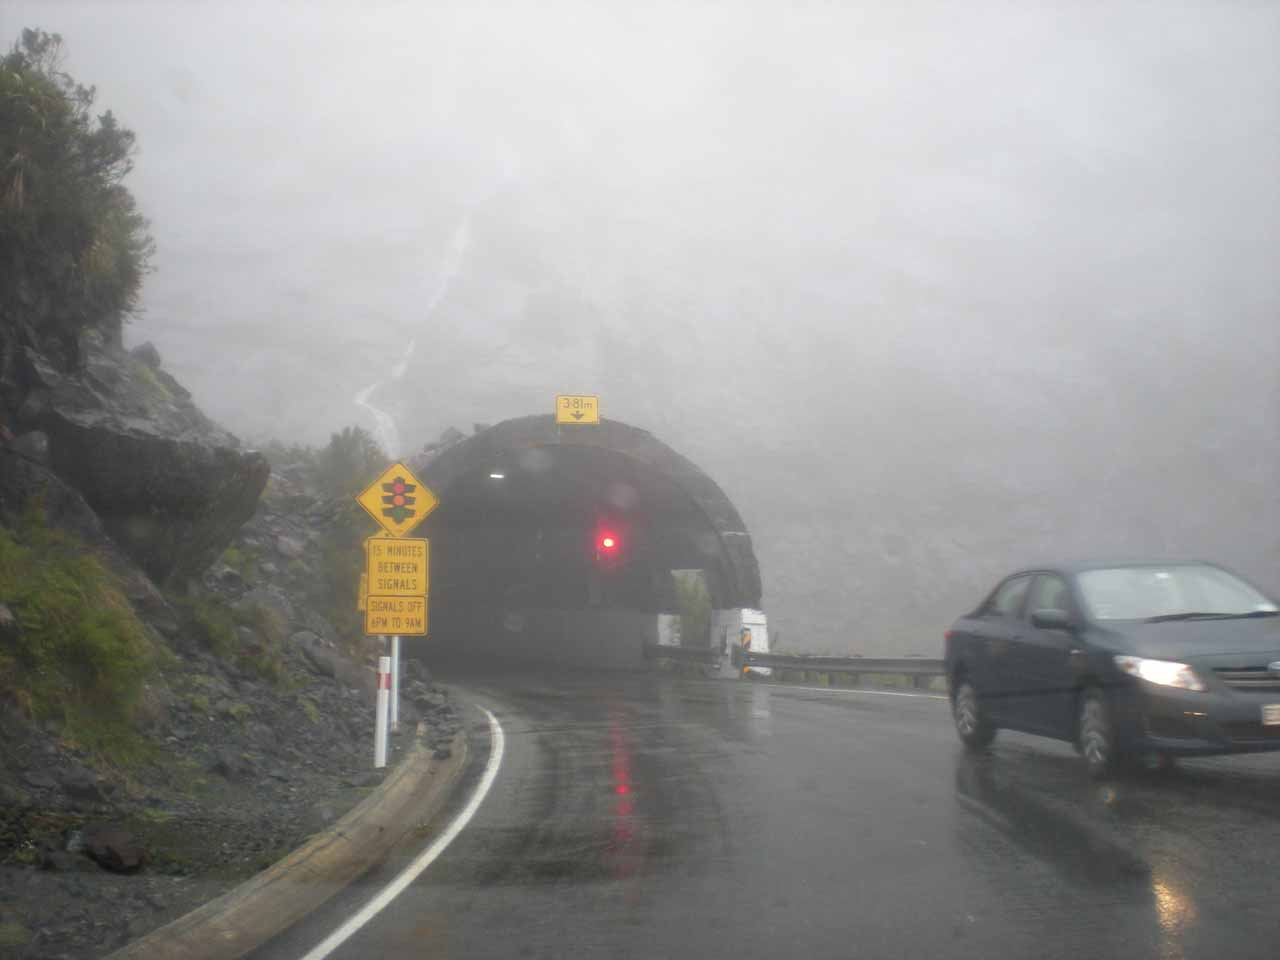 It was pouring rain when we left Milford Sound and waited at the west end of the Homer Tunnel in December 2009